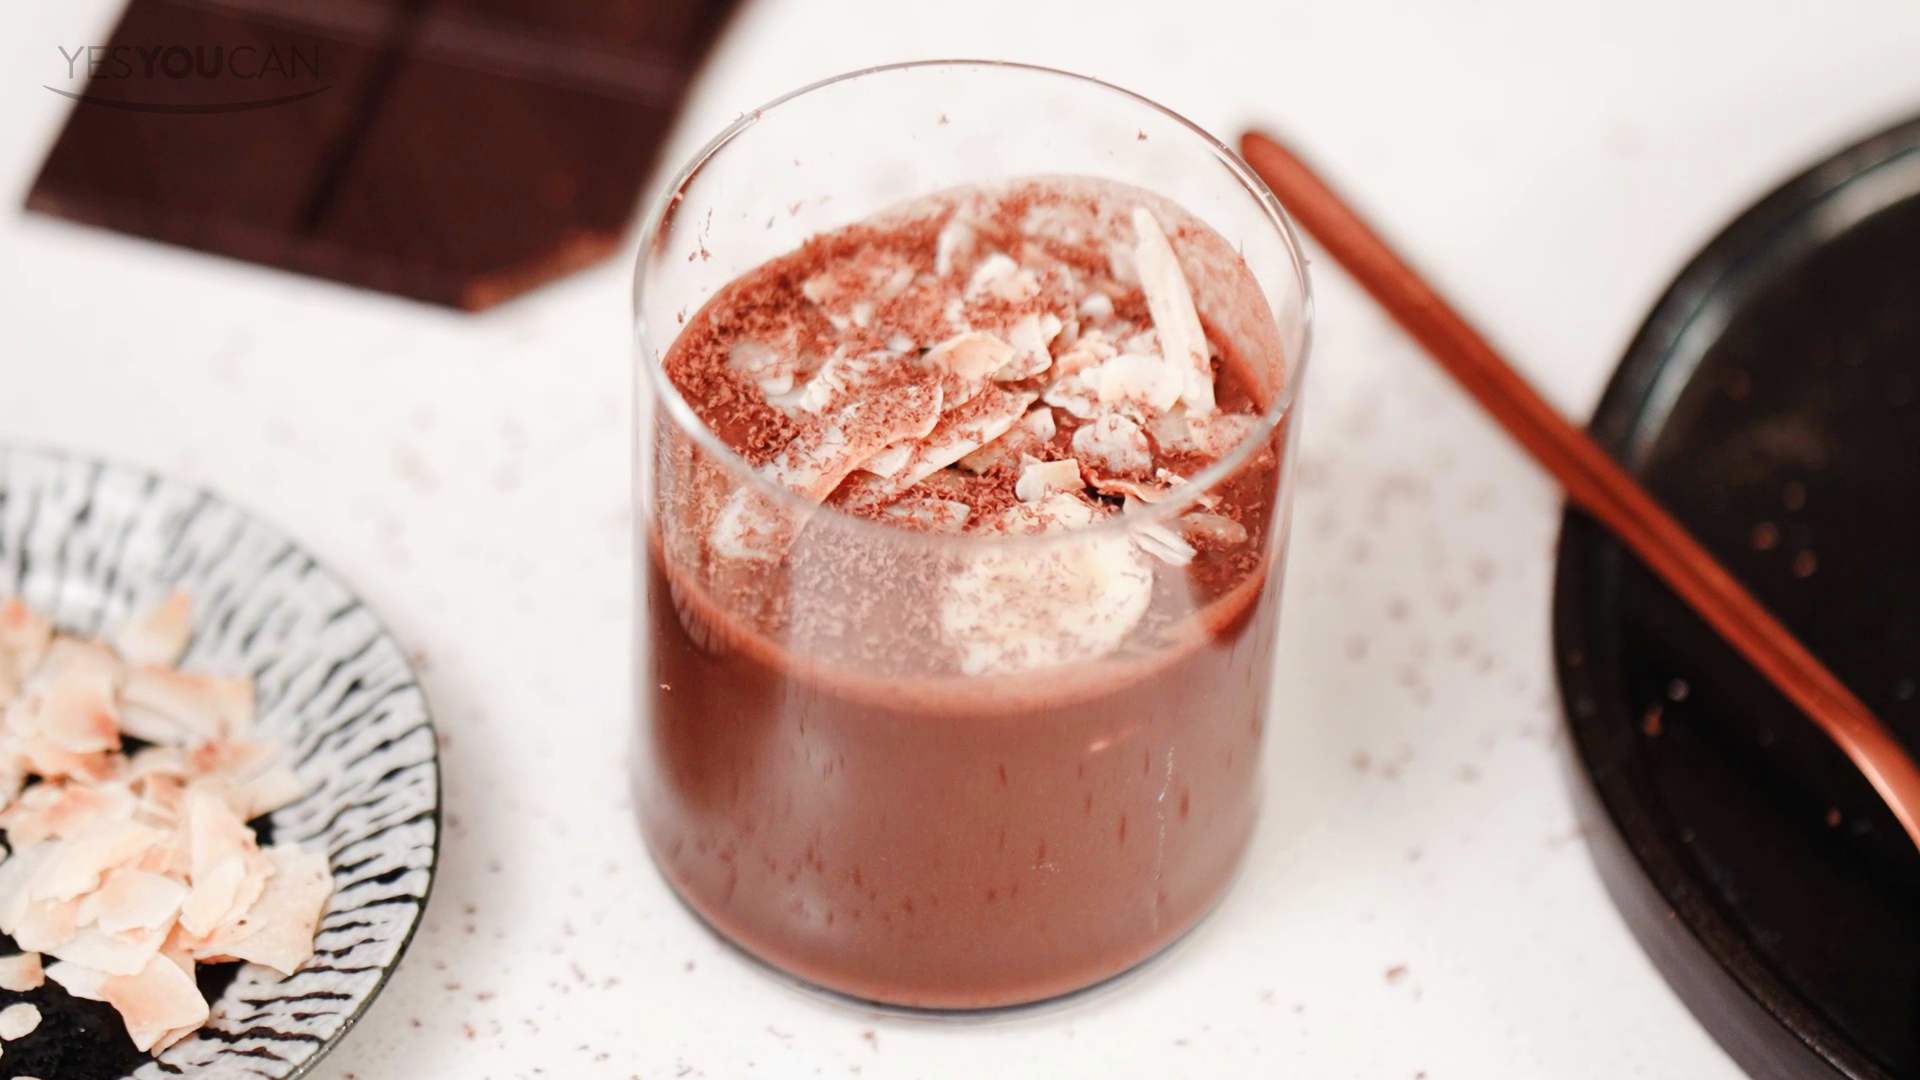 Cacao and Macadamia Protein Shake Mix